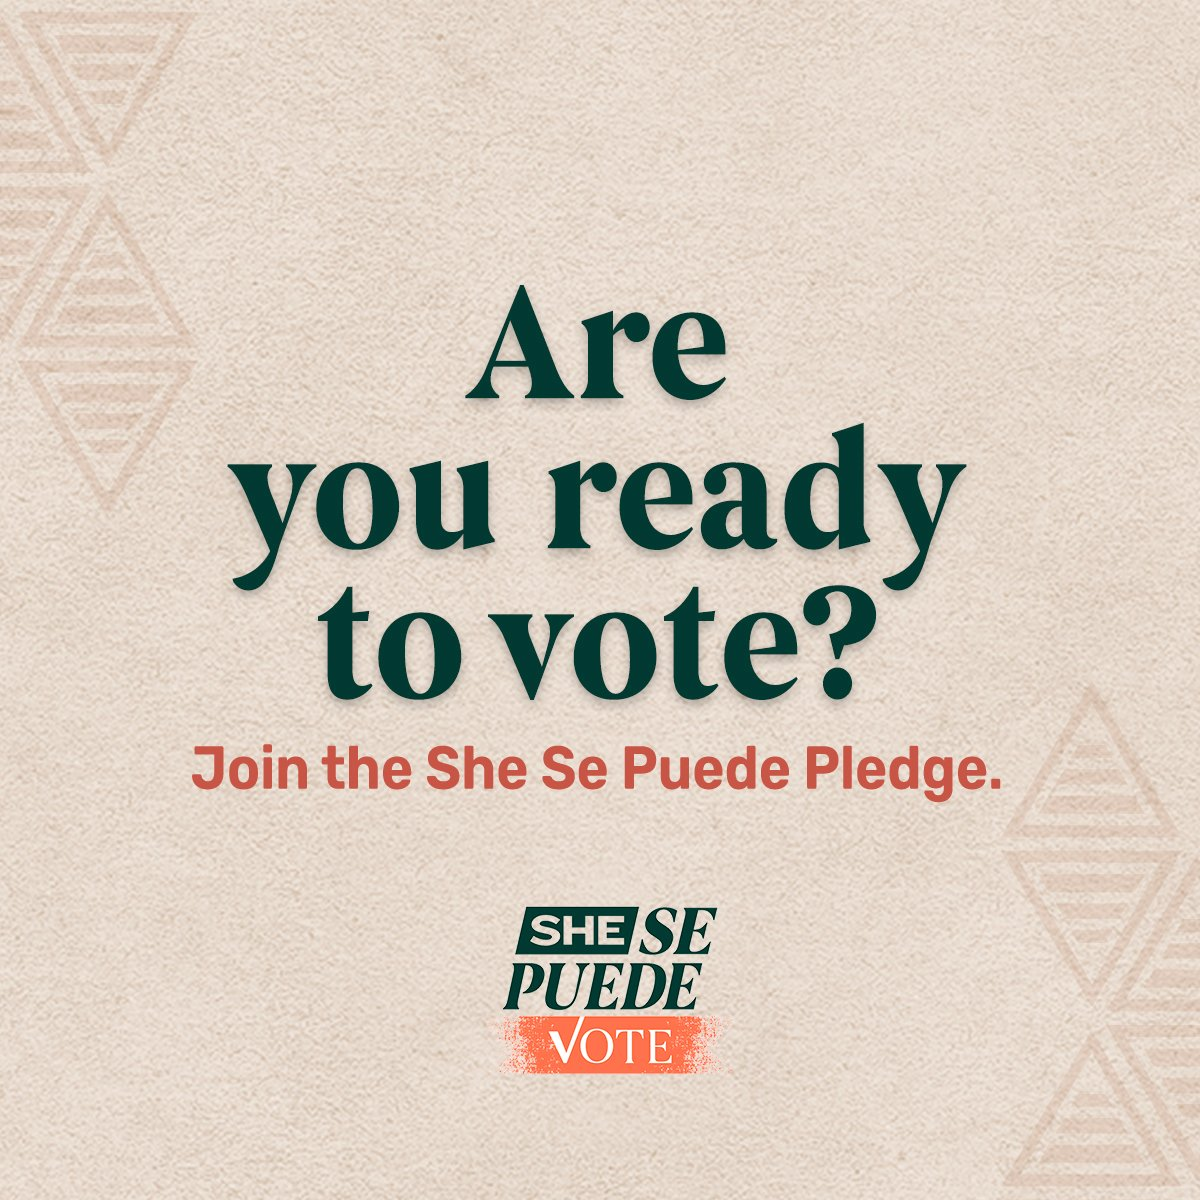 🚨There are only 7 weeks until Election Day🚨 Are you ready to vote? Join the She Se Puede pledge  and retweet + tag 3 friends who should join you. 🗳✨#SheSePuedeVote #SheSePuede  #VoterRegistrationDay